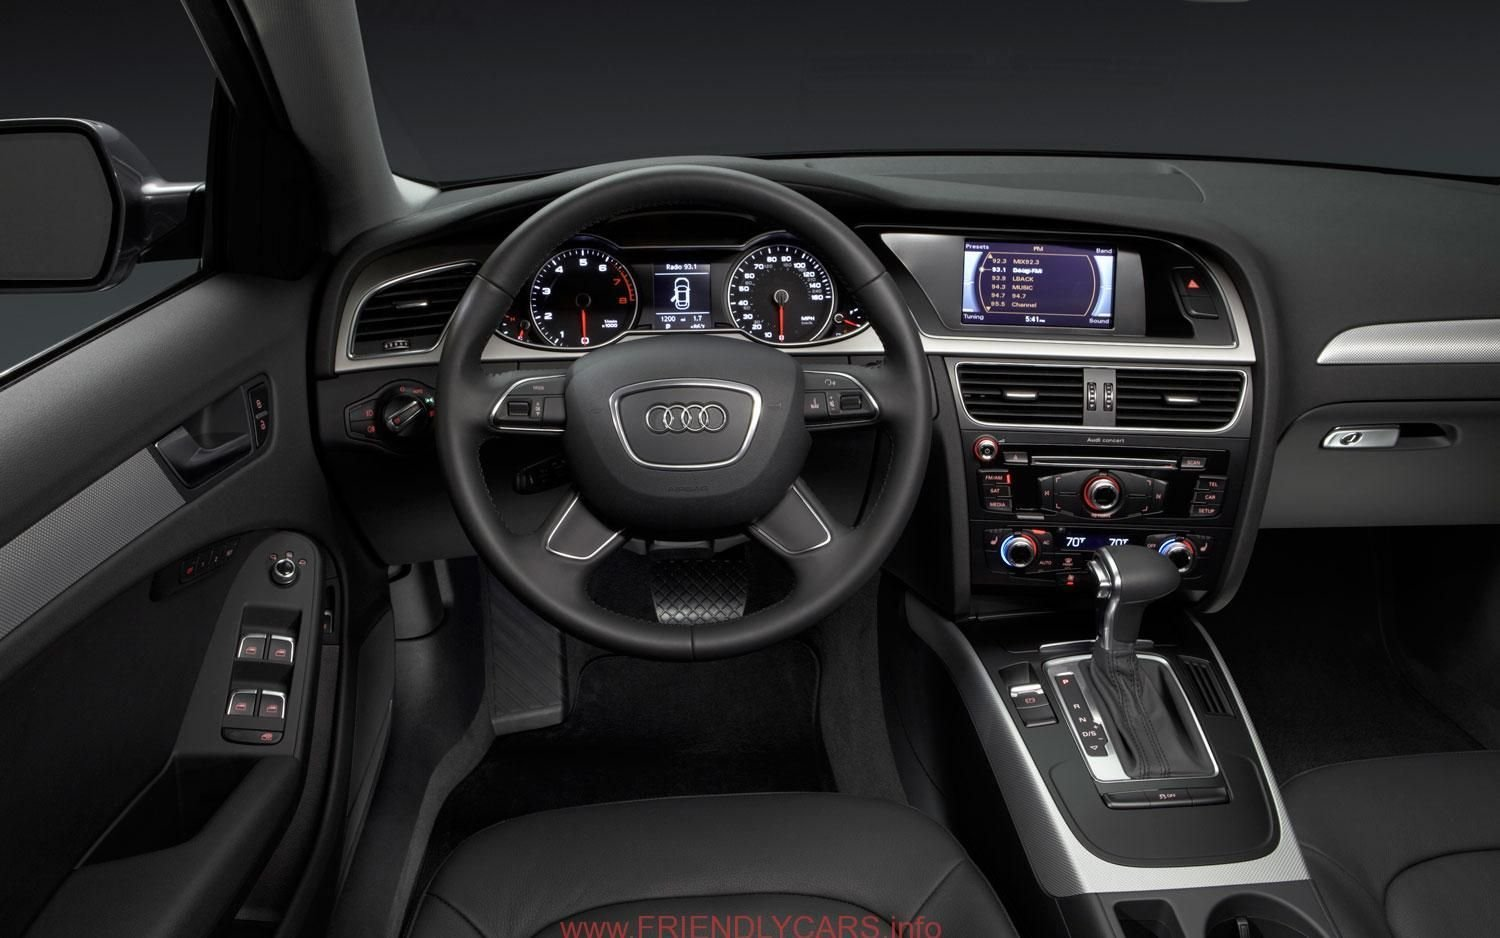 Latest Cool 2007 Audi A4 Interior Car Images Hd 2014 Audi A4 New Free Download